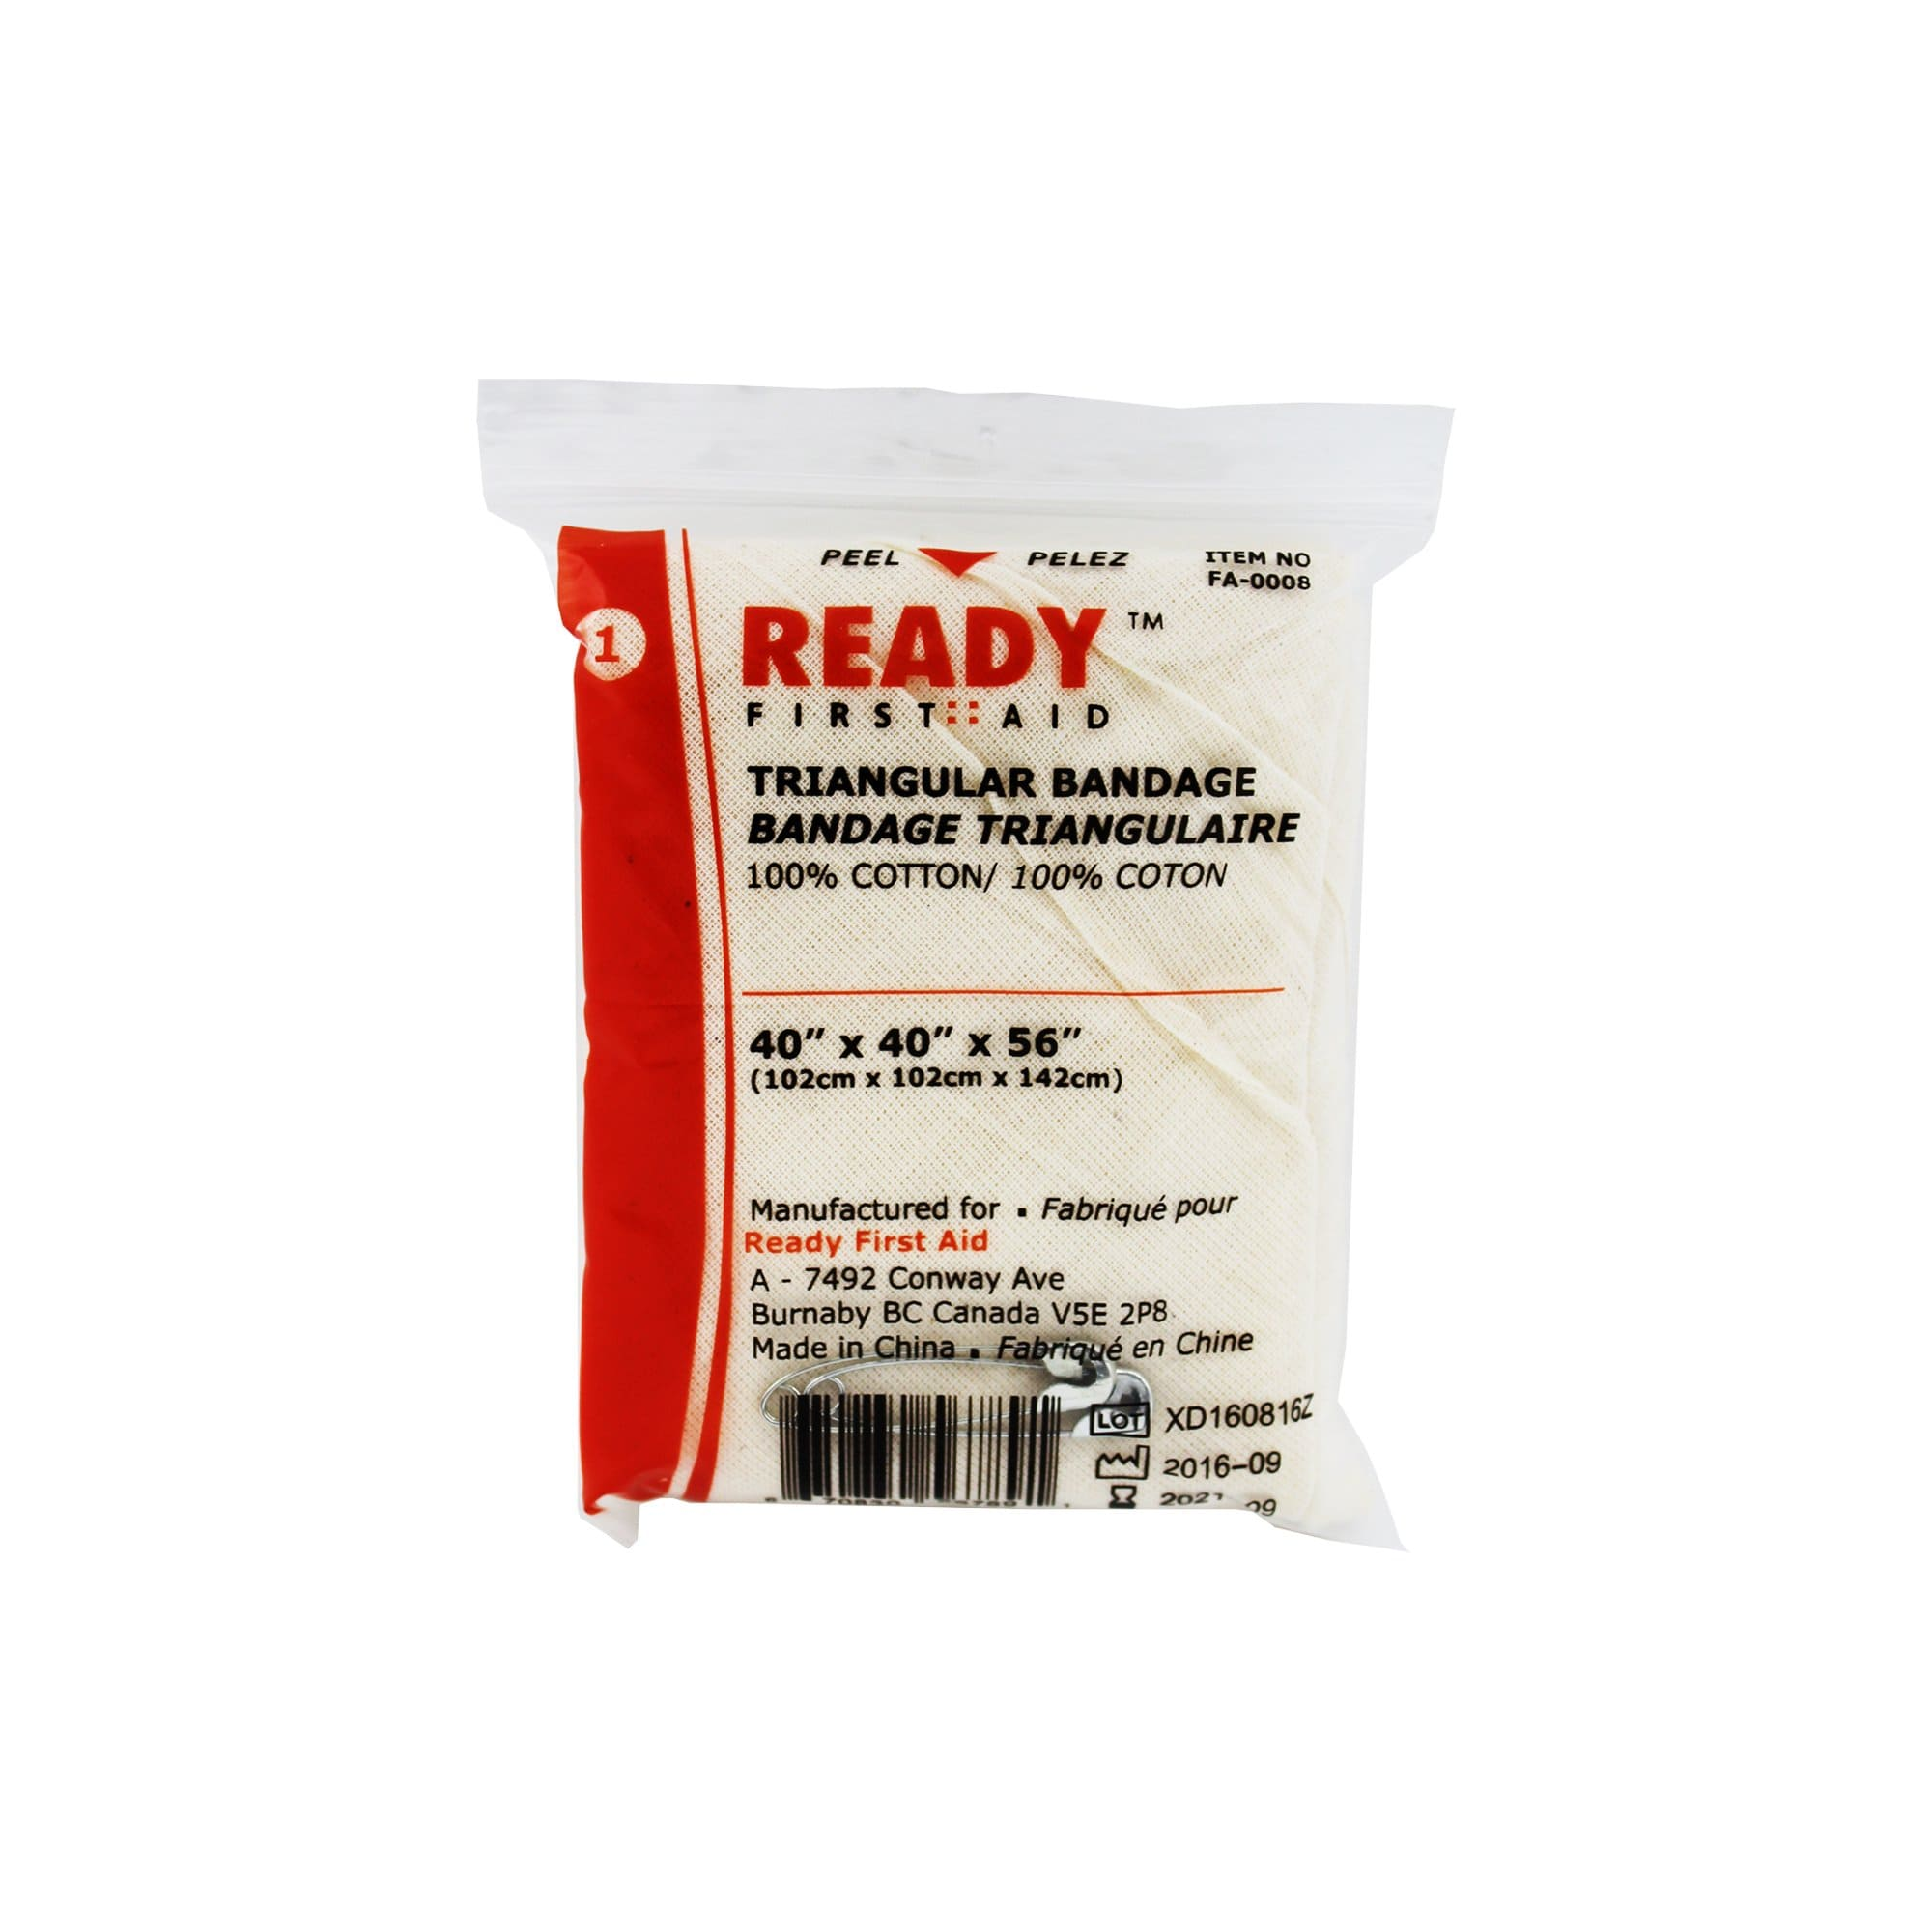 Triangular Bandage 102cm x 102cm x 142cm - Ready First Aid